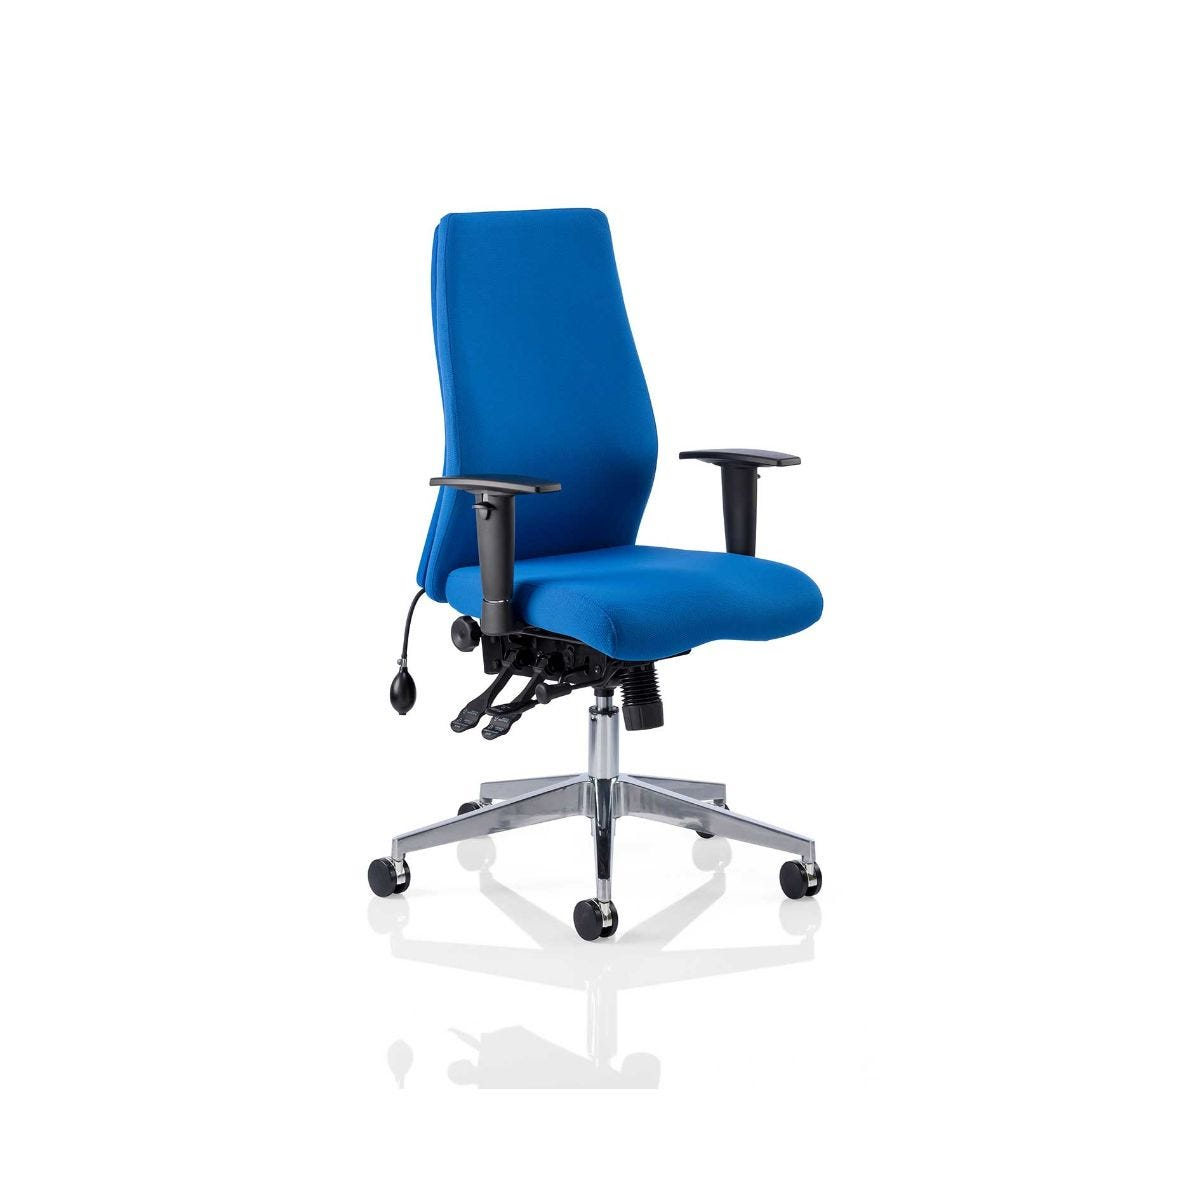 Onyx Posture Office Chair, Blue